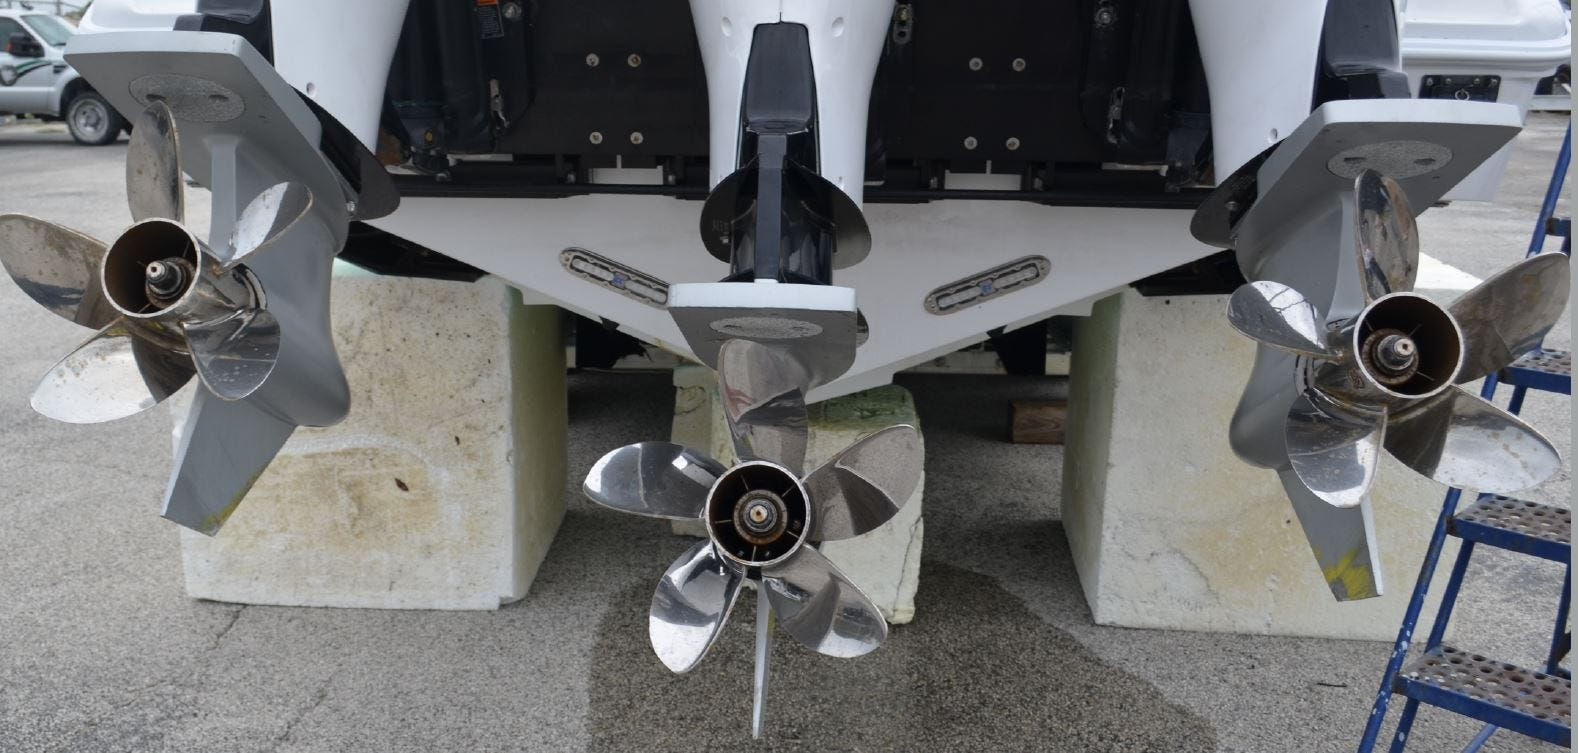 The boat that struck Carter Viss on Nov. 28, 2019, the Talley Girl, had three engines, each with five-blade propellers. The boat is shown here after the accident in a Florida Fish and Wildlife Conservation Commission lot.